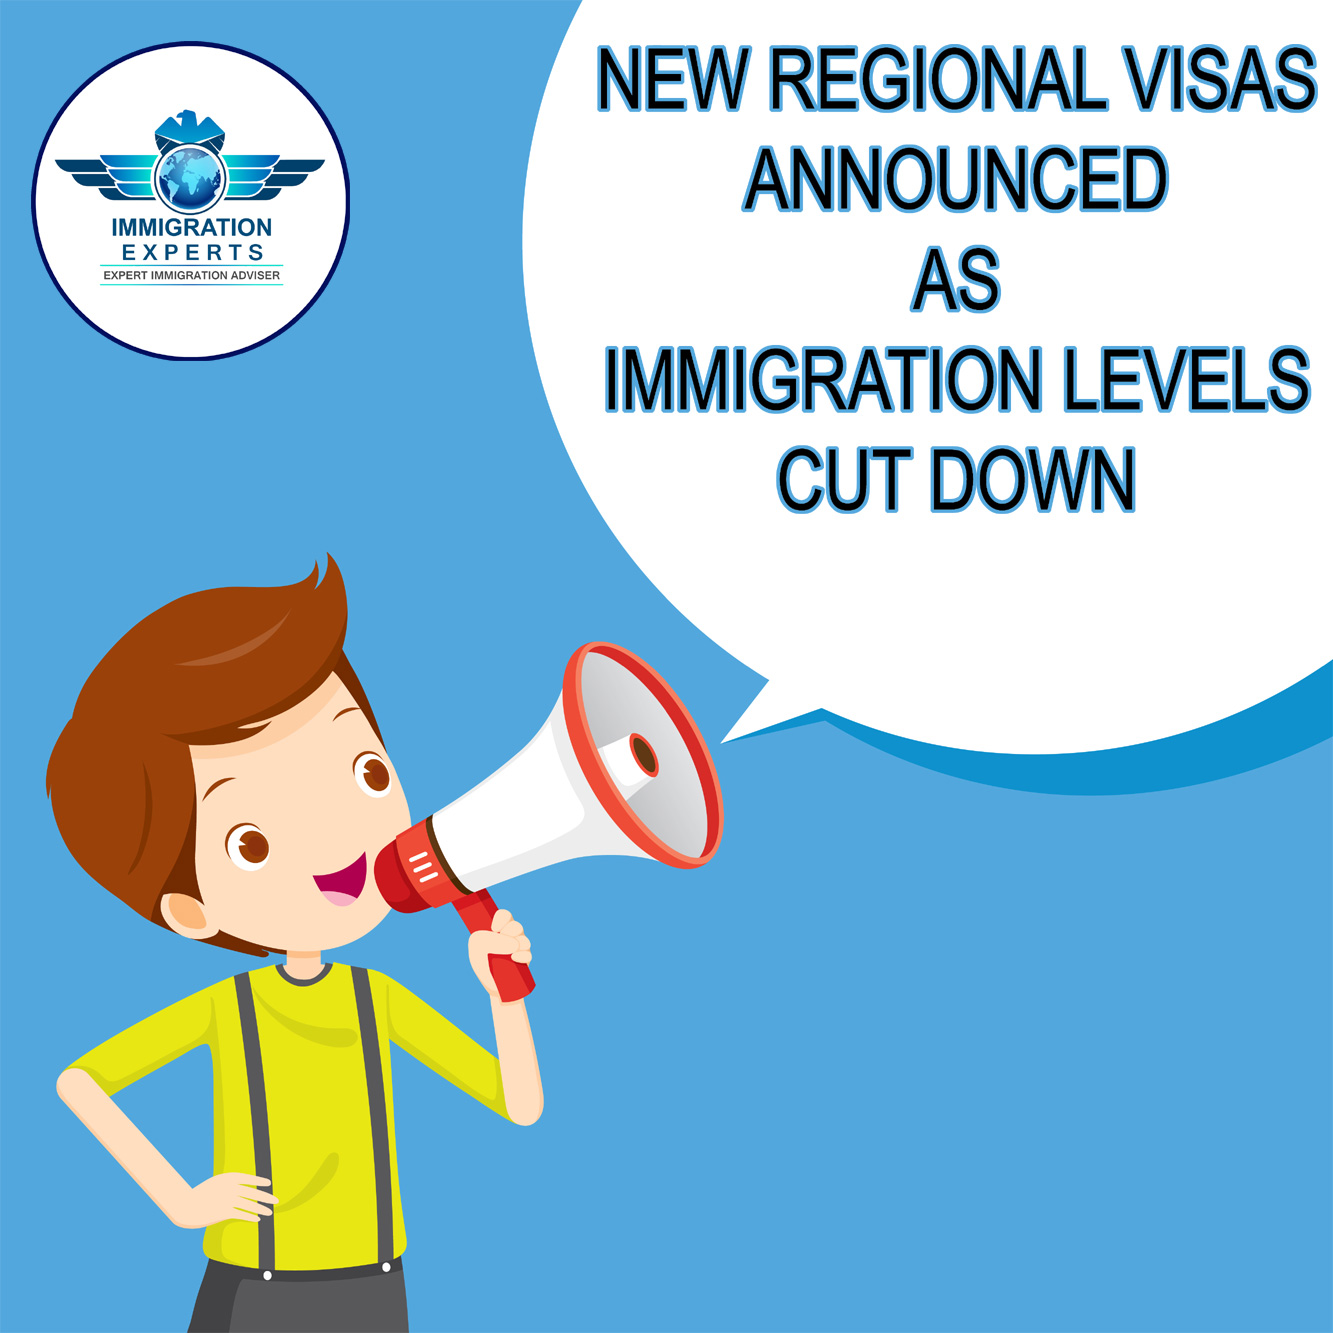 New Regional Visas Announced As Immigration Levels Cut